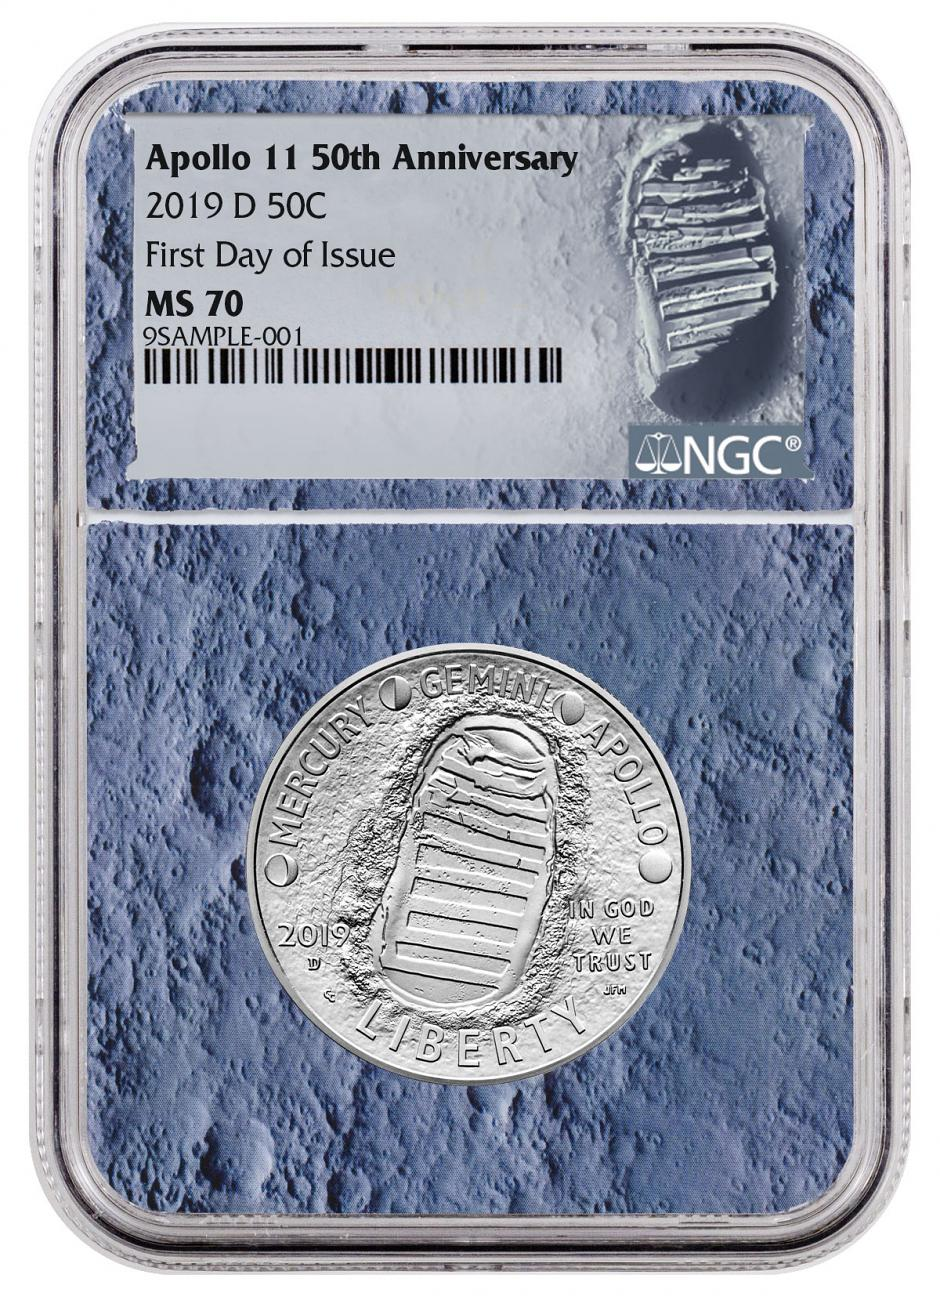 2019-D US Apollo 11 50th Anniversary Commemorative Clad Half Dollar Coin NGC MS70 FDI With Apollo 11 Mission Patch Moon Core Holder